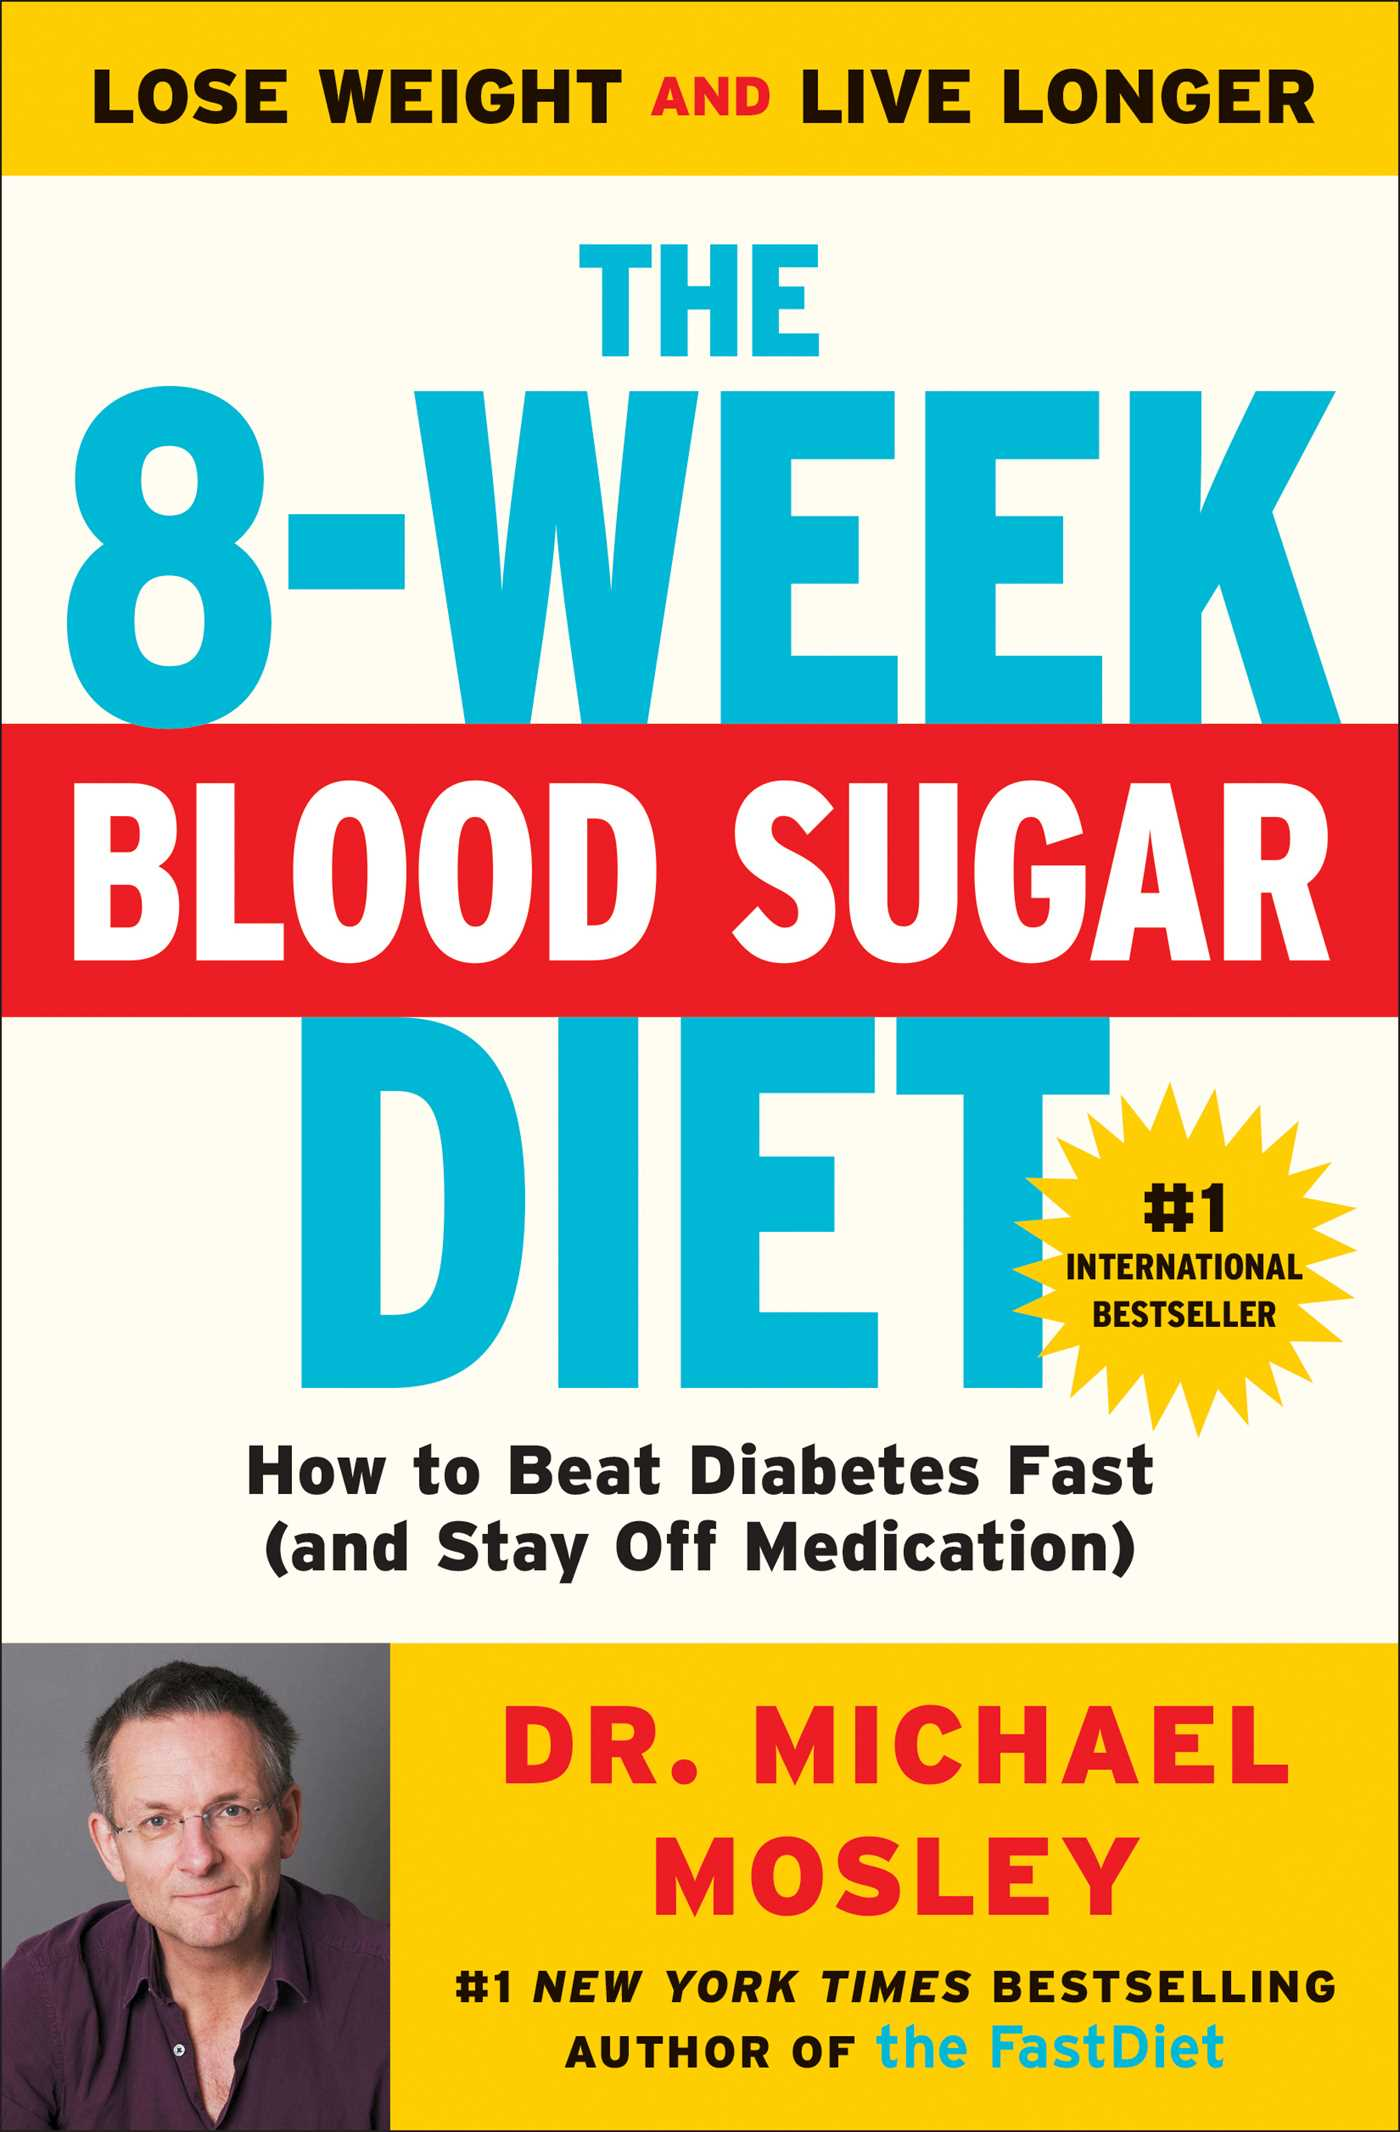 The 8 week blood sugar diet 9781501111235 hr